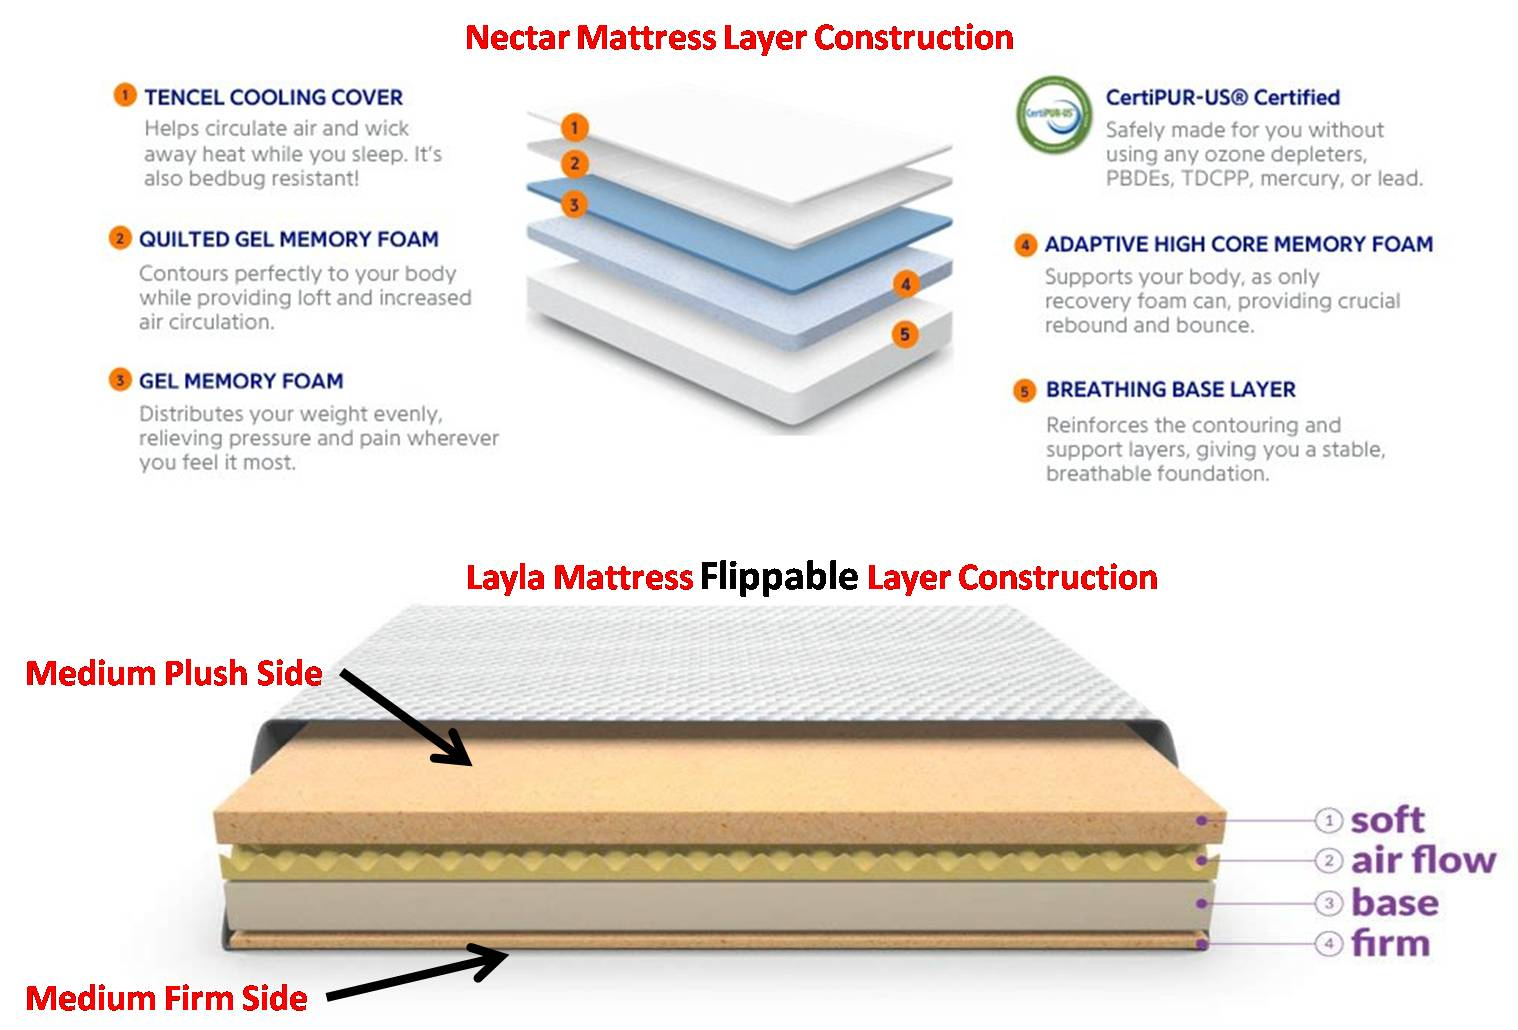 Nectar Vs Layer - Layer Construction